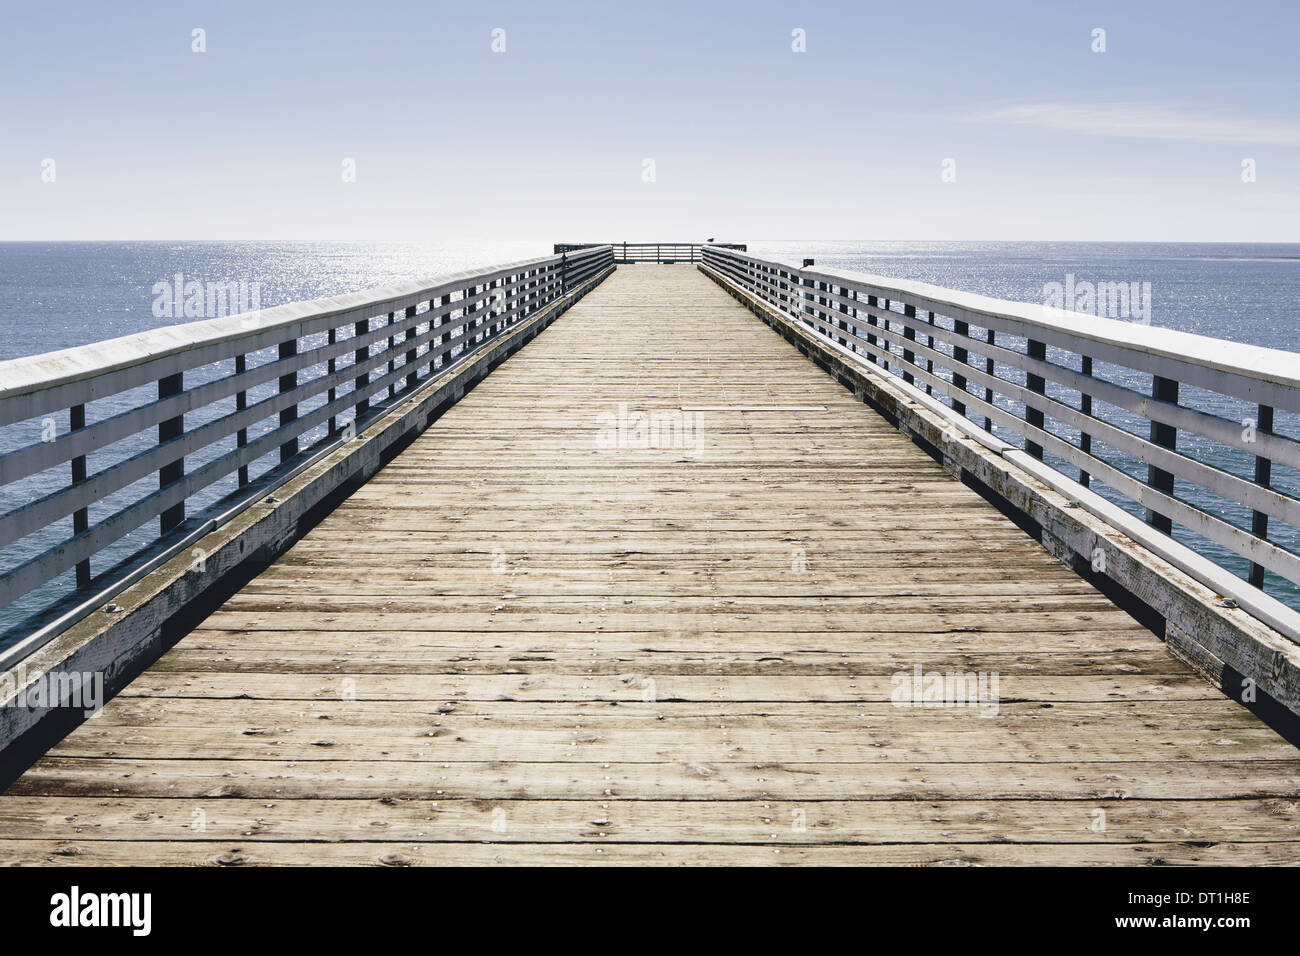 A long pier with railings extending out over the Pacific Ocean leading to the horizon - Stock Image